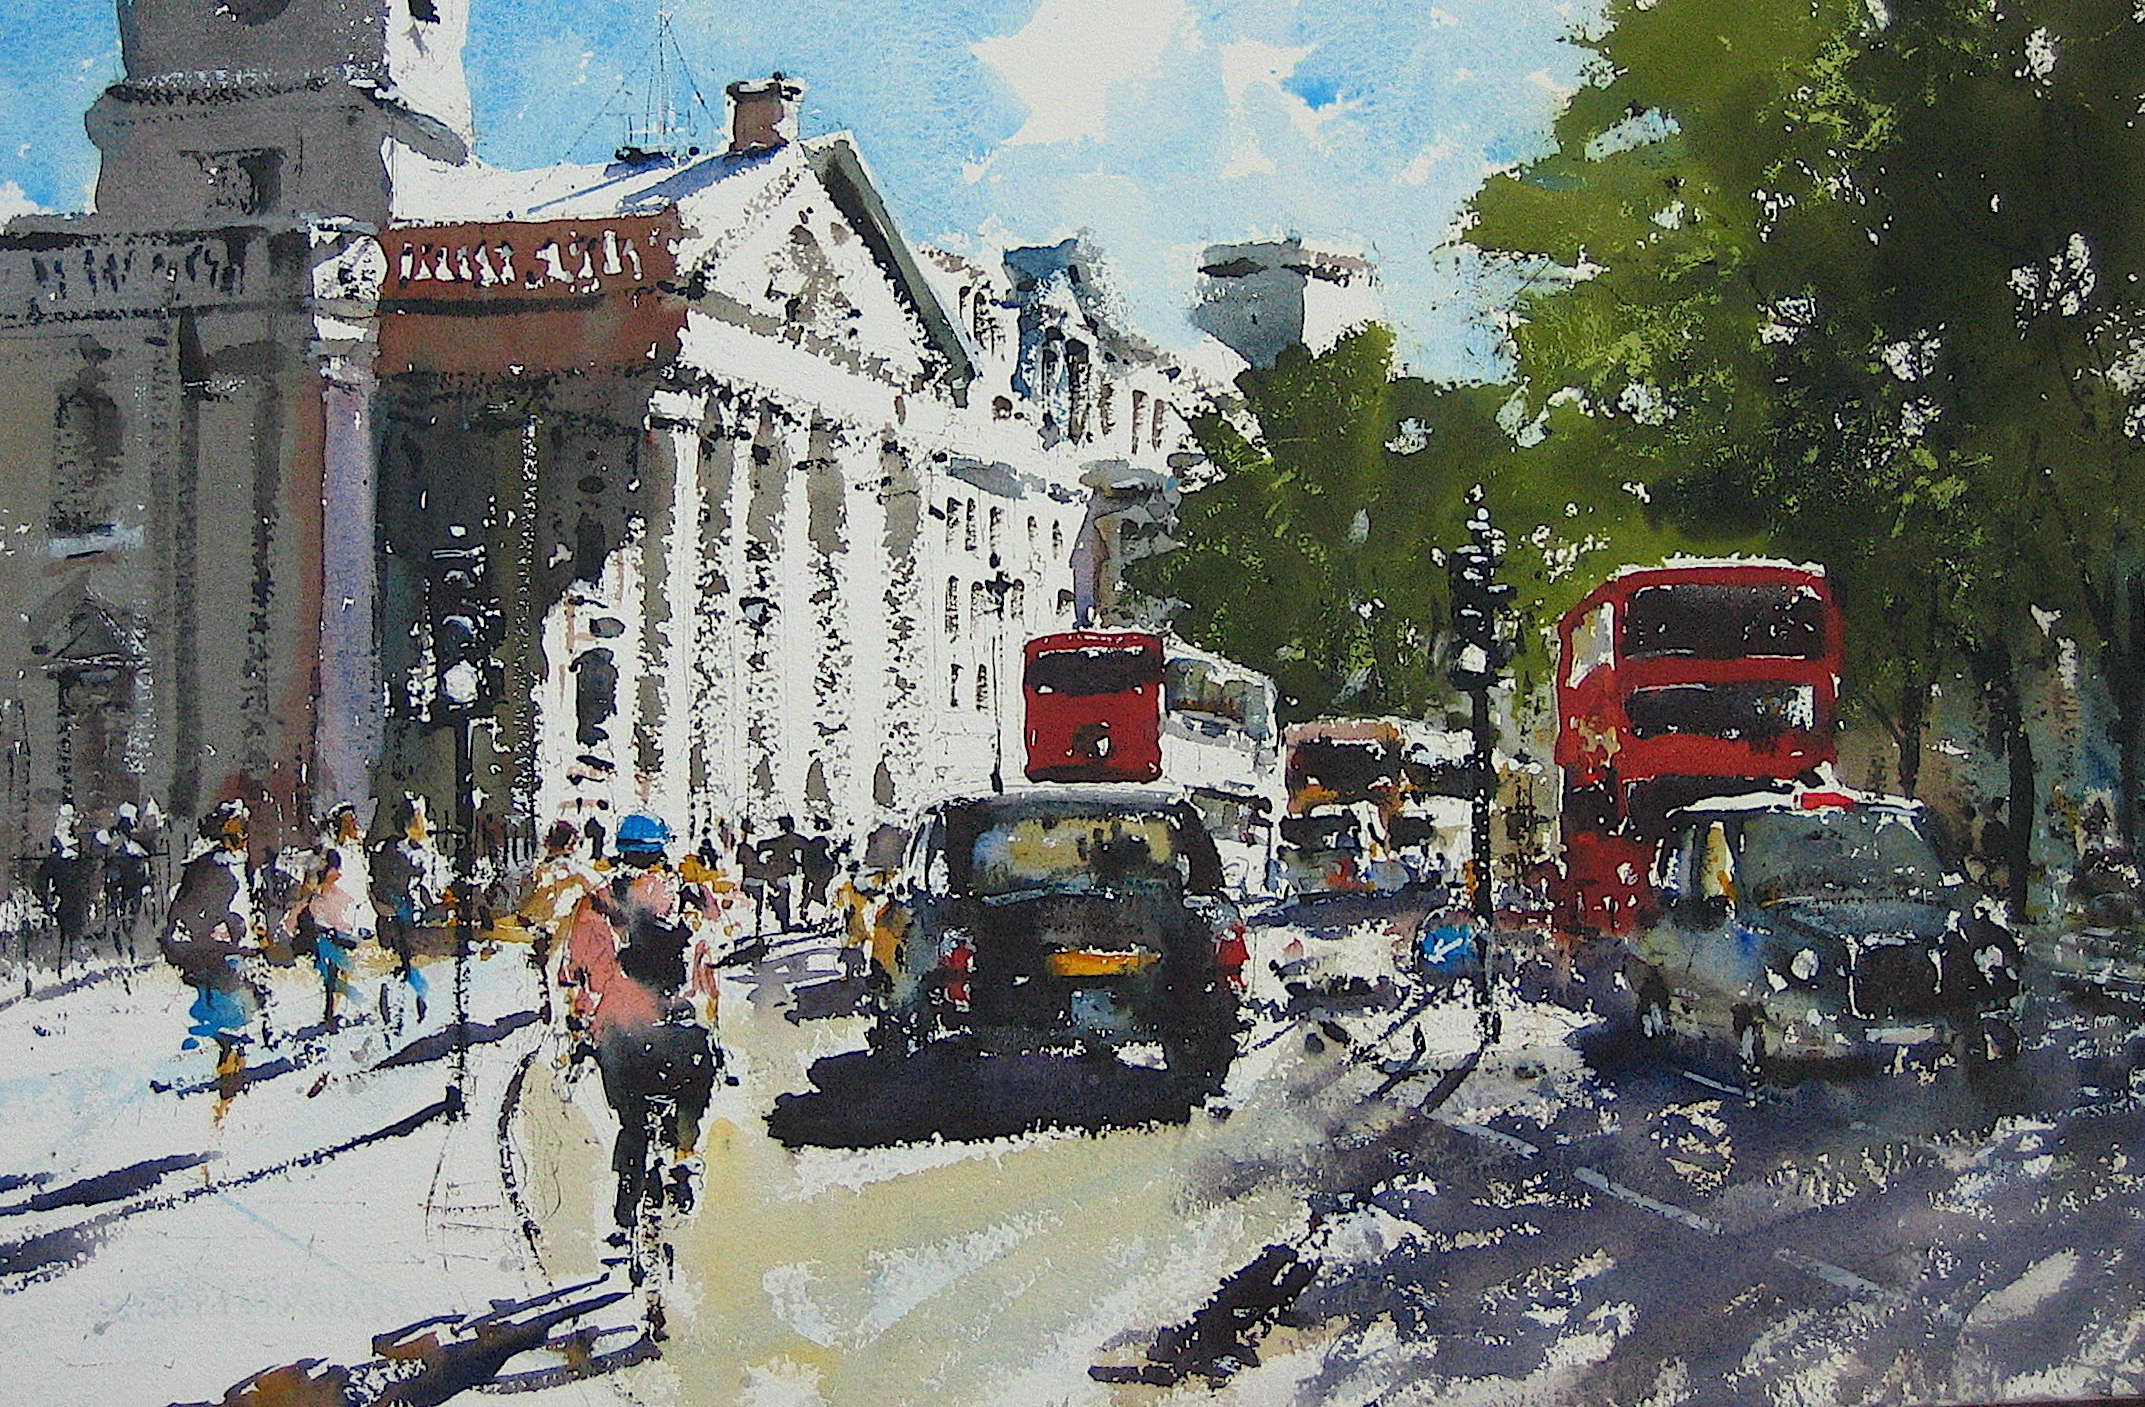 St. Martin's London: 13.5 x 19 in: SOLD